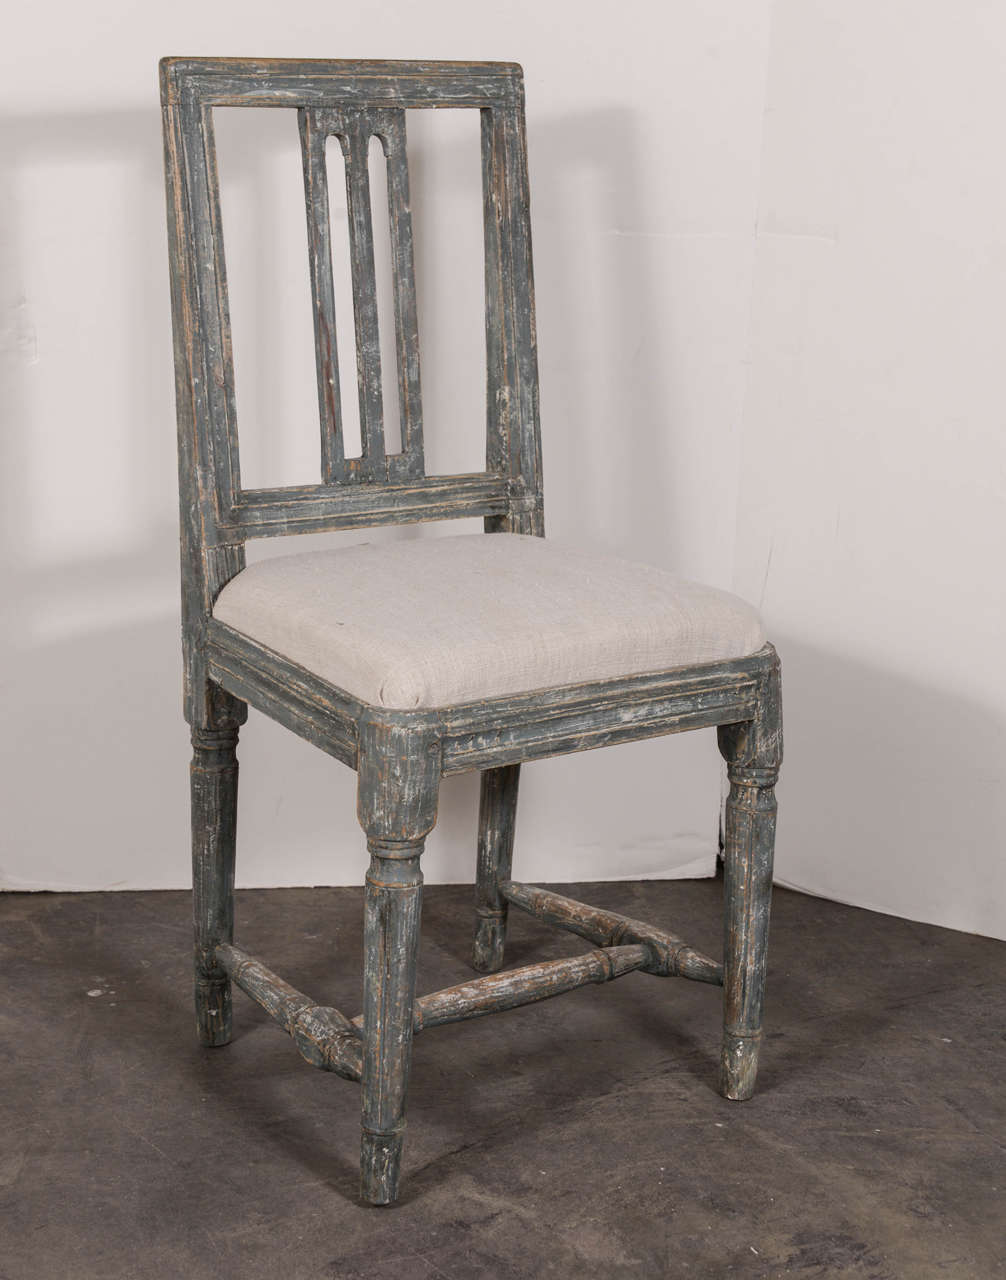 Swedish Gustavian Blue Painted Slat Back Dining Chairs from circa 1790 5